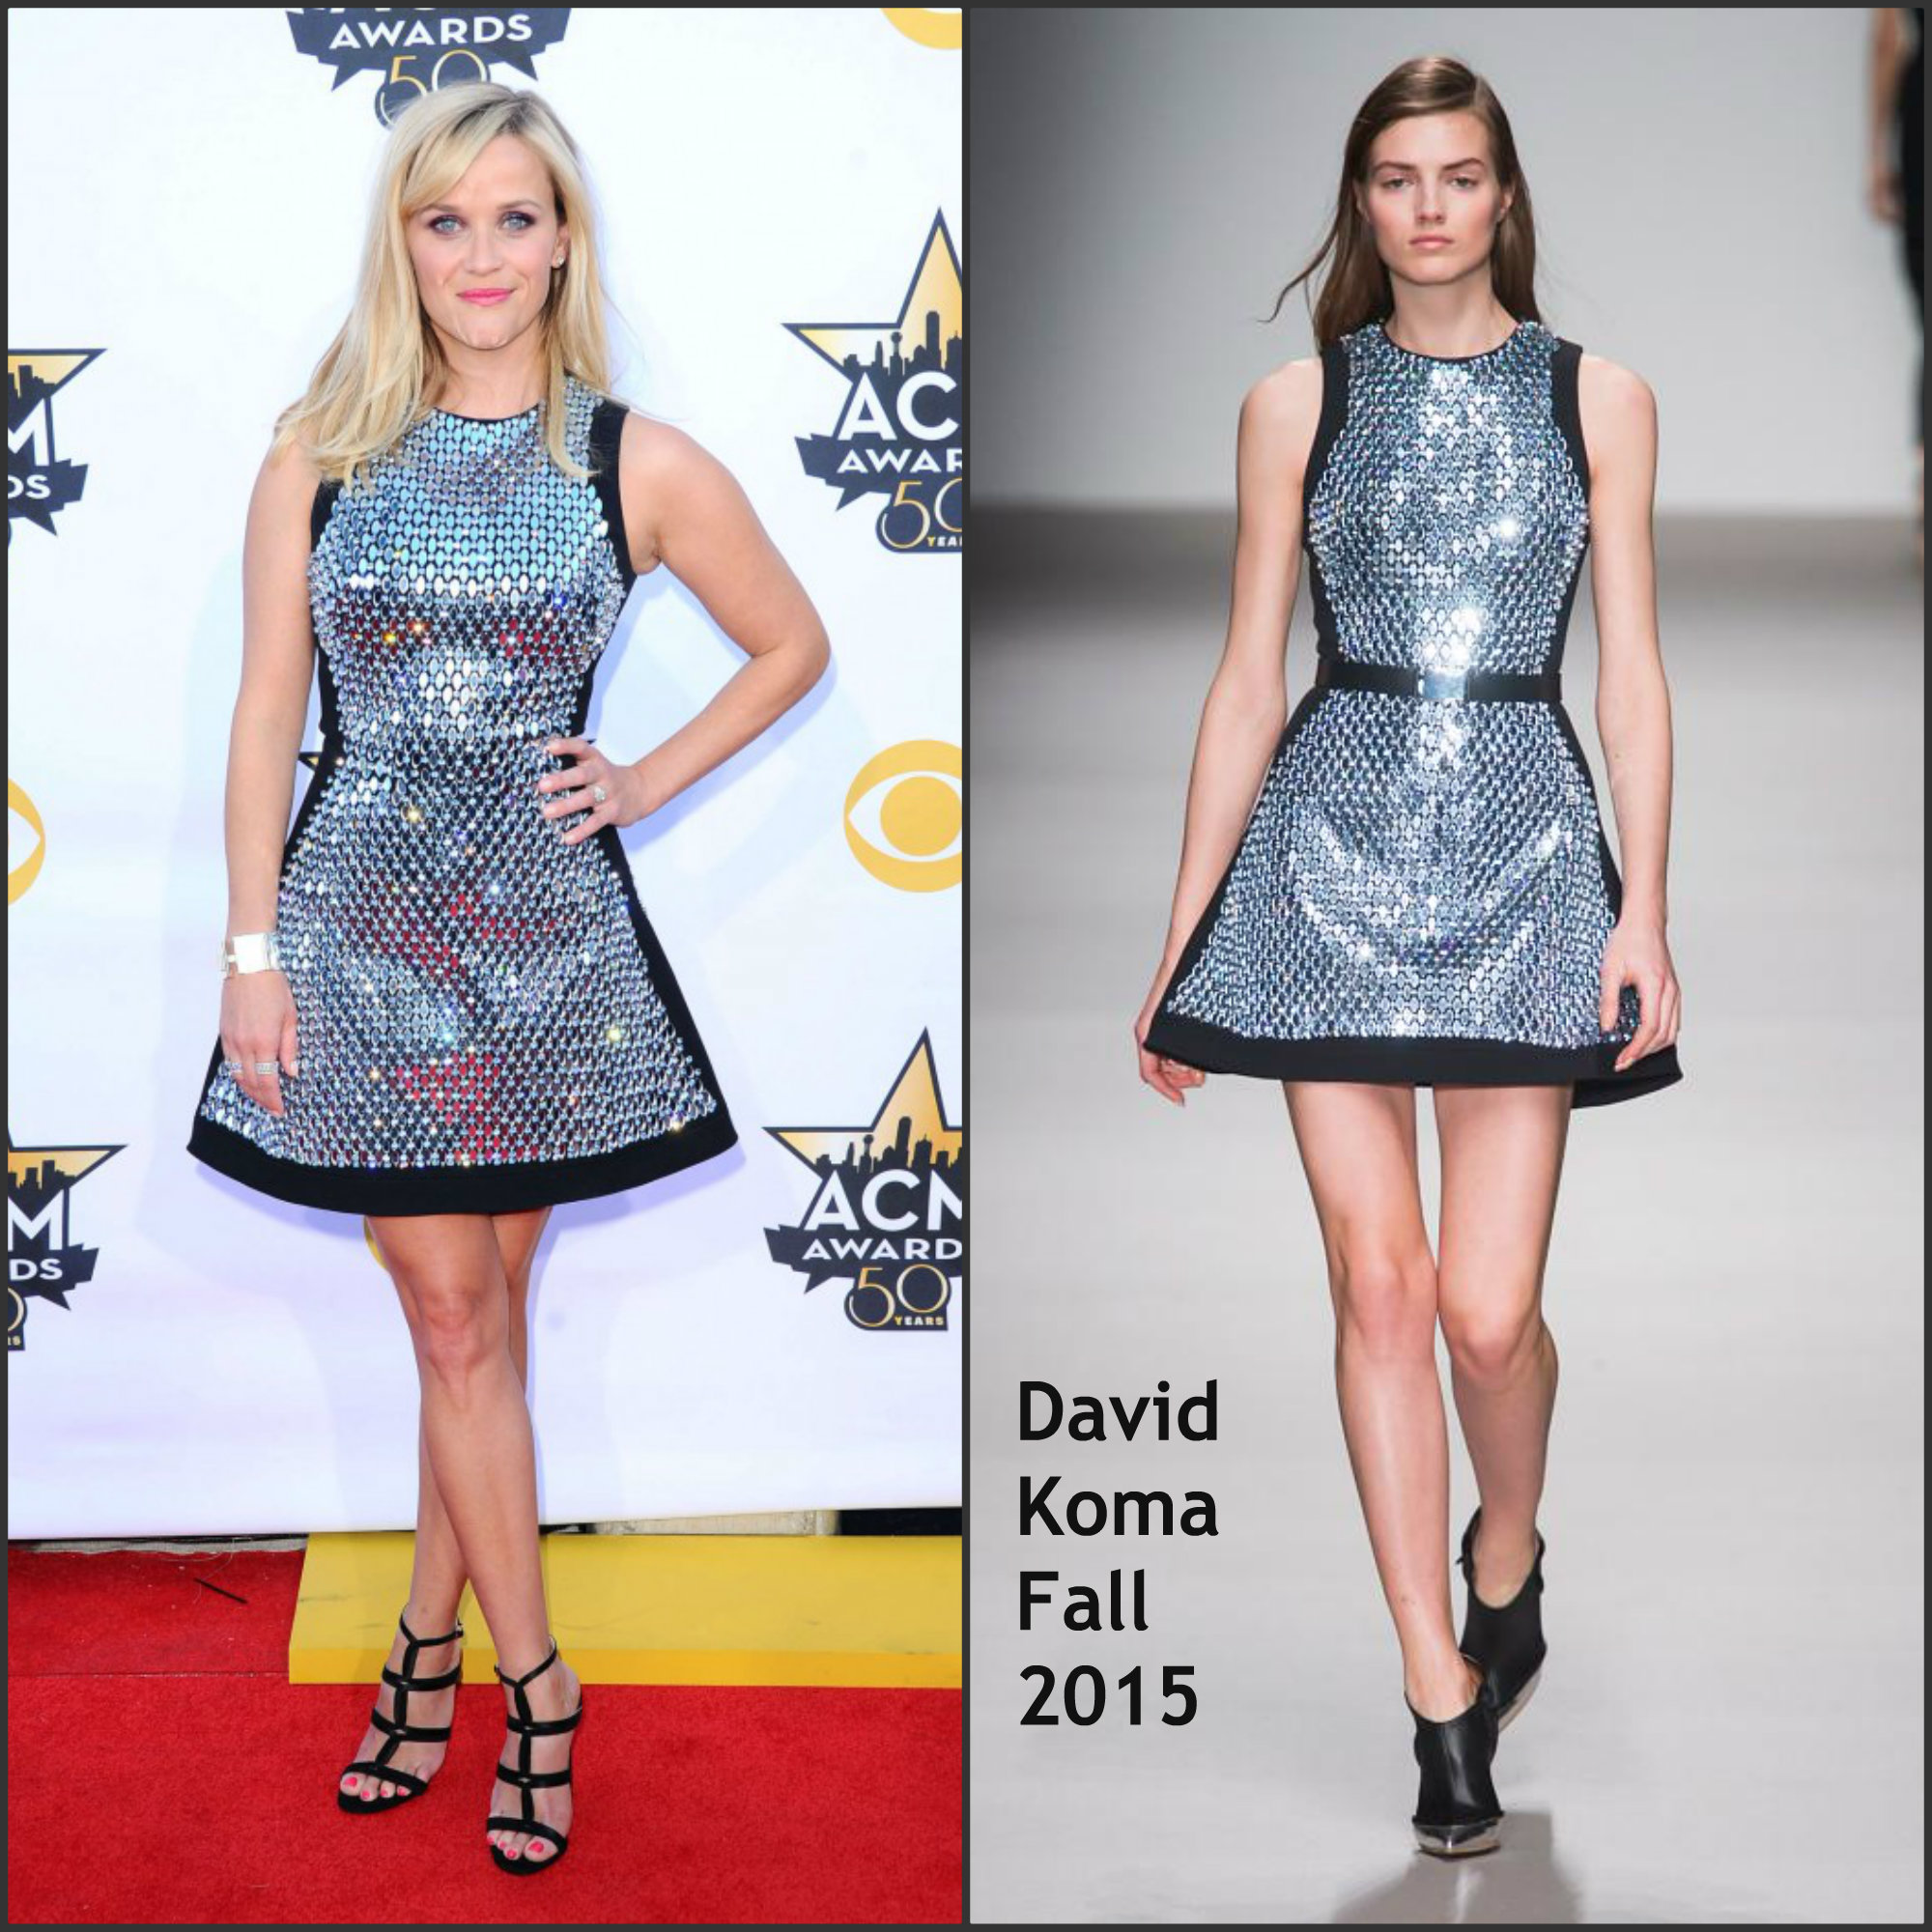 Reese-Witherspoon-in-David-Koma-at-2015-ACM-Awards